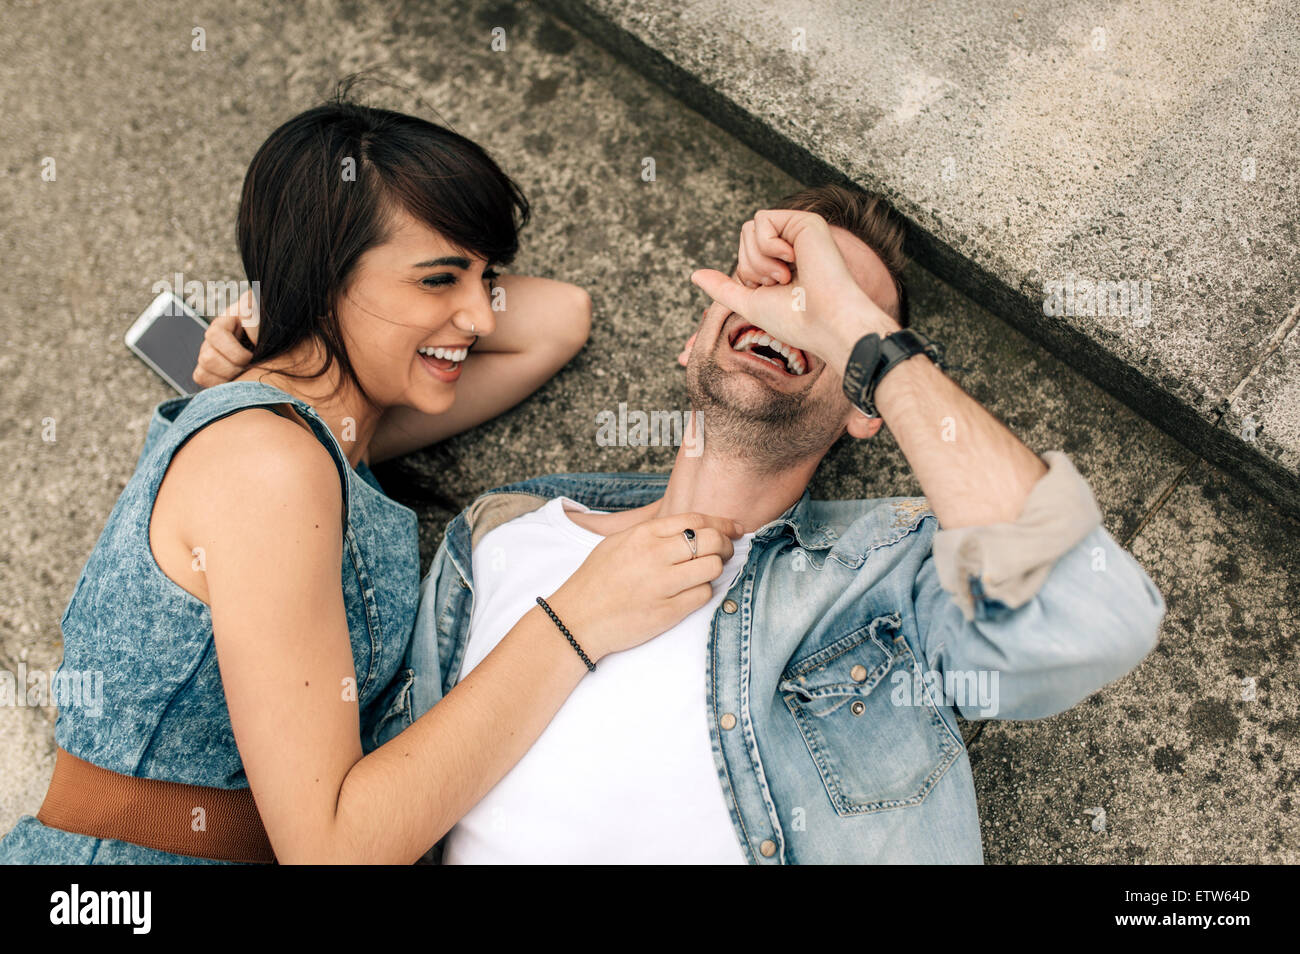 Laughing young couple lying on the ground outside - Stock Image